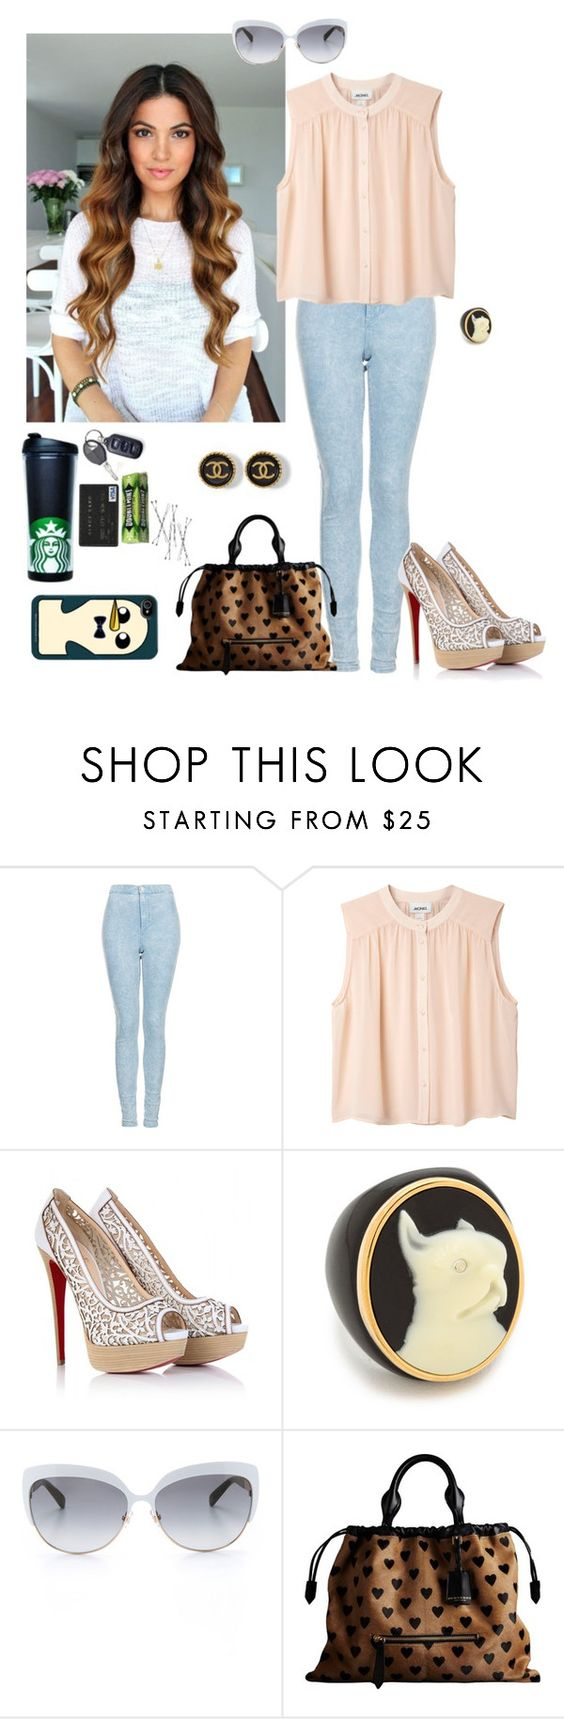 """""""gotta get out, can't stay in the house"""" by dearme-xoxo on Polyvore featuring moda, Topshop, Monki, Christian Louboutin, Marc by Marc Jacobs, Kate Spade e Burberry"""